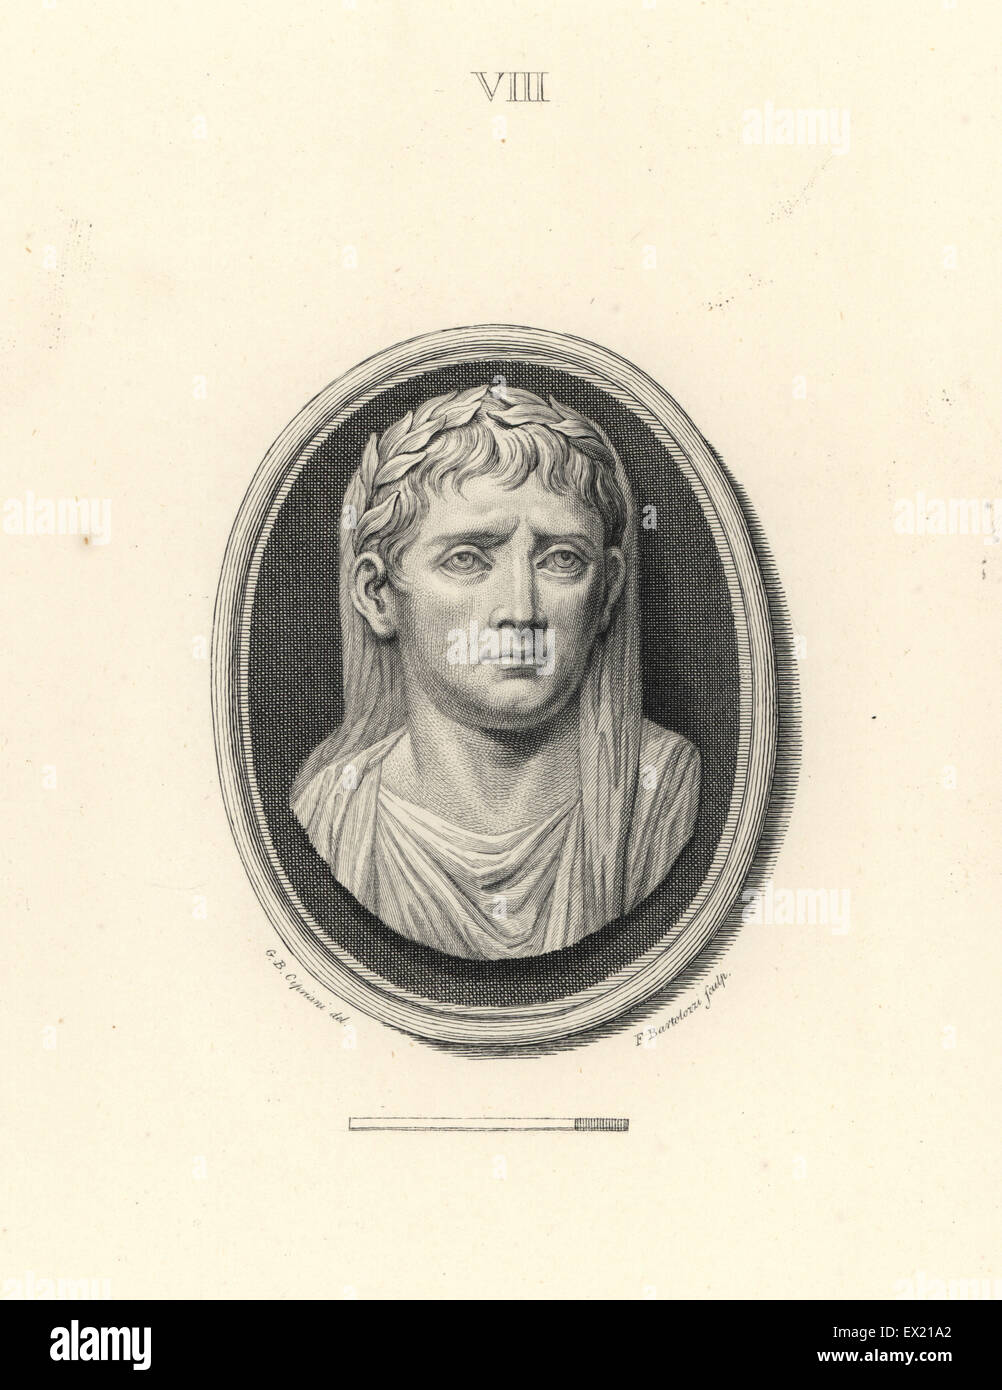 Augustus, founder of the Roman Empire, with laurel wreath. Copperplate engraving by Francesco Bartolozzi after a - Stock Image